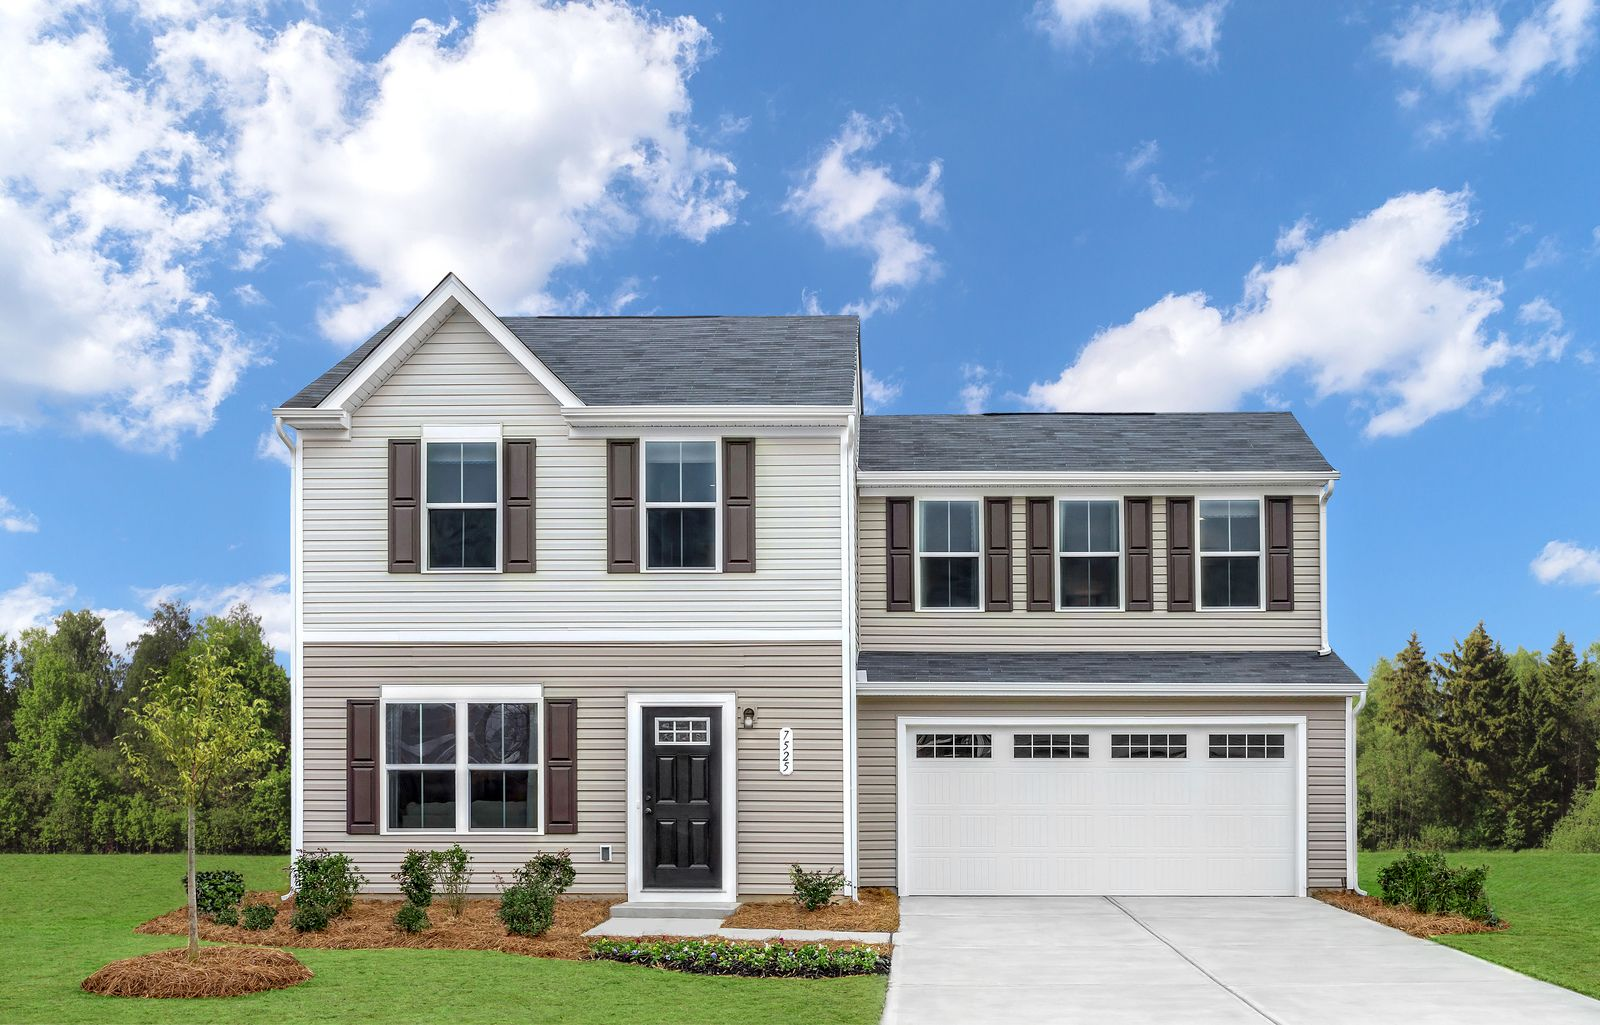 WELCOME HOME TO FAIRFIELD ESTATES